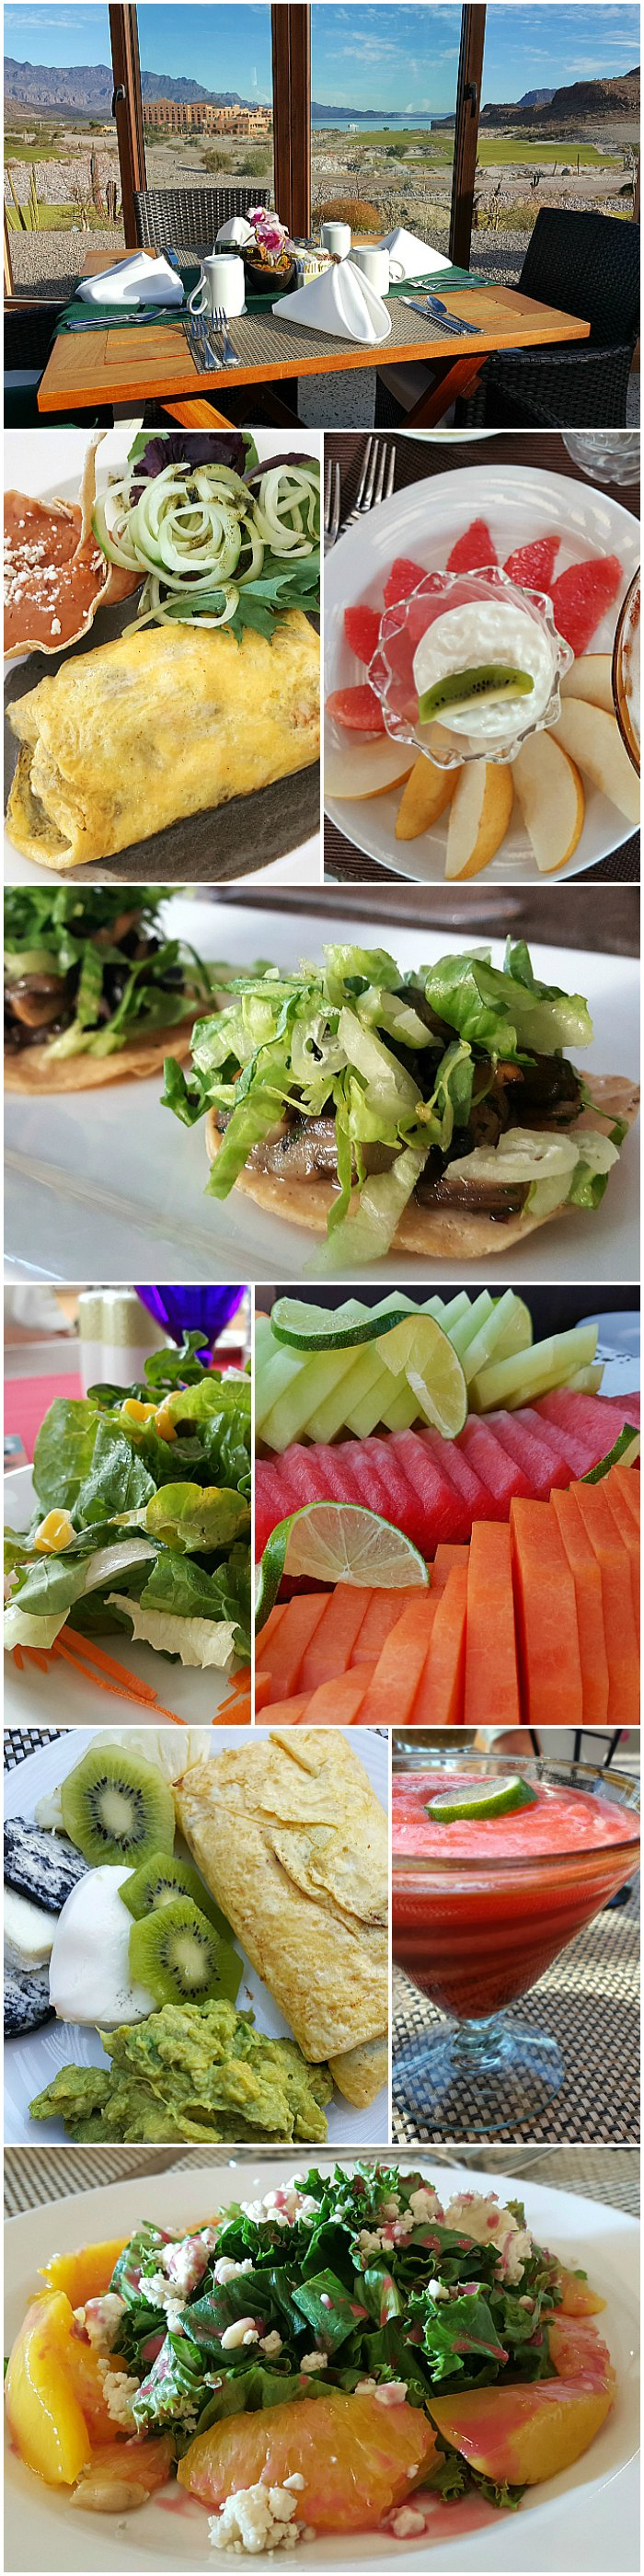 Plenty of Vegetarian options at the all inclusive Villa Del Palmar Loreto, Baja California Sur, Mexico